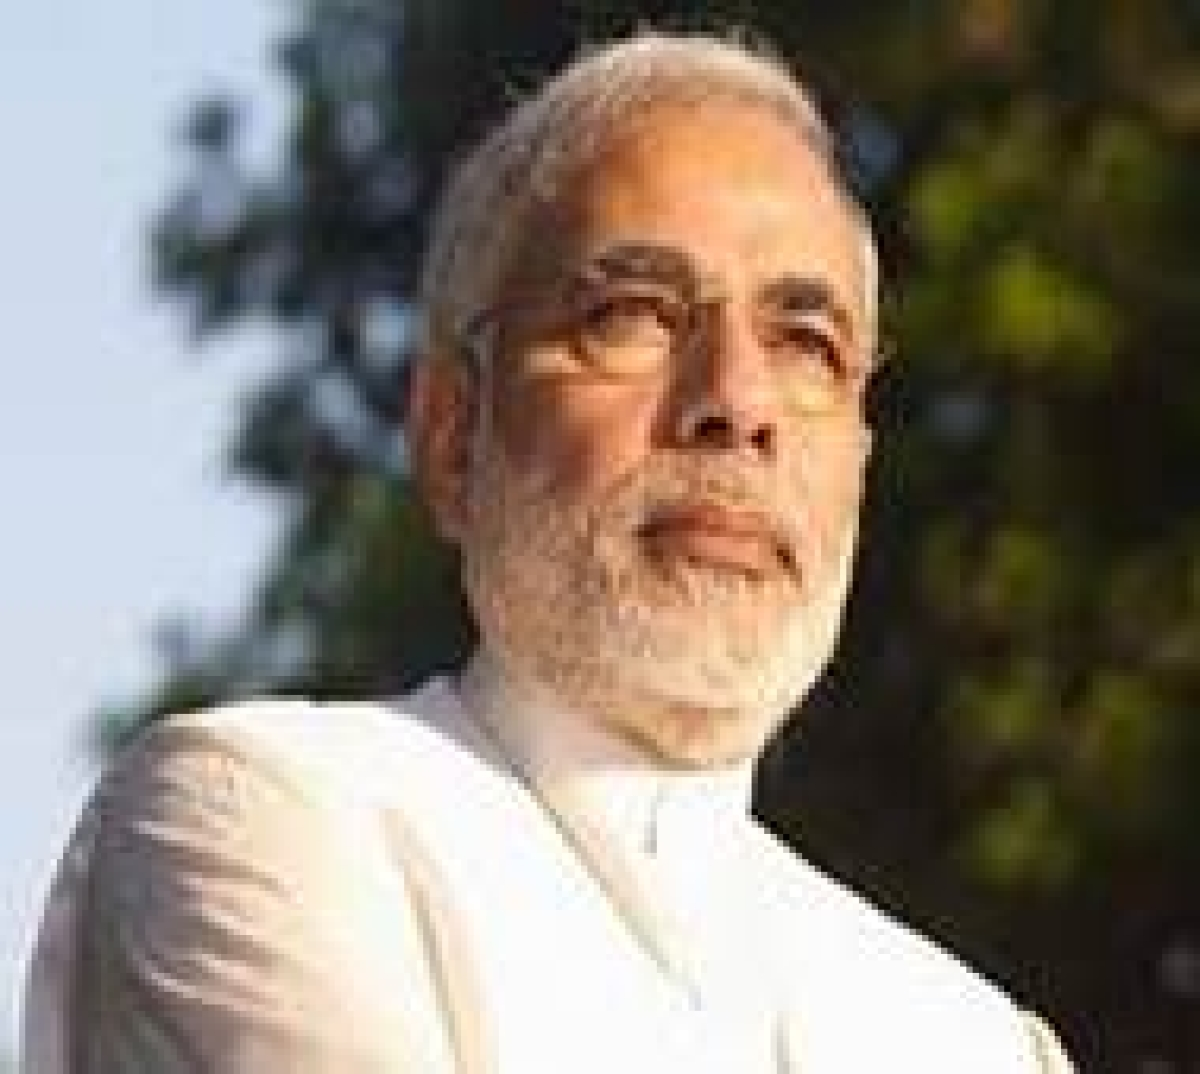 Modi to launch rural uplift campaign at Ambedkar birthplace